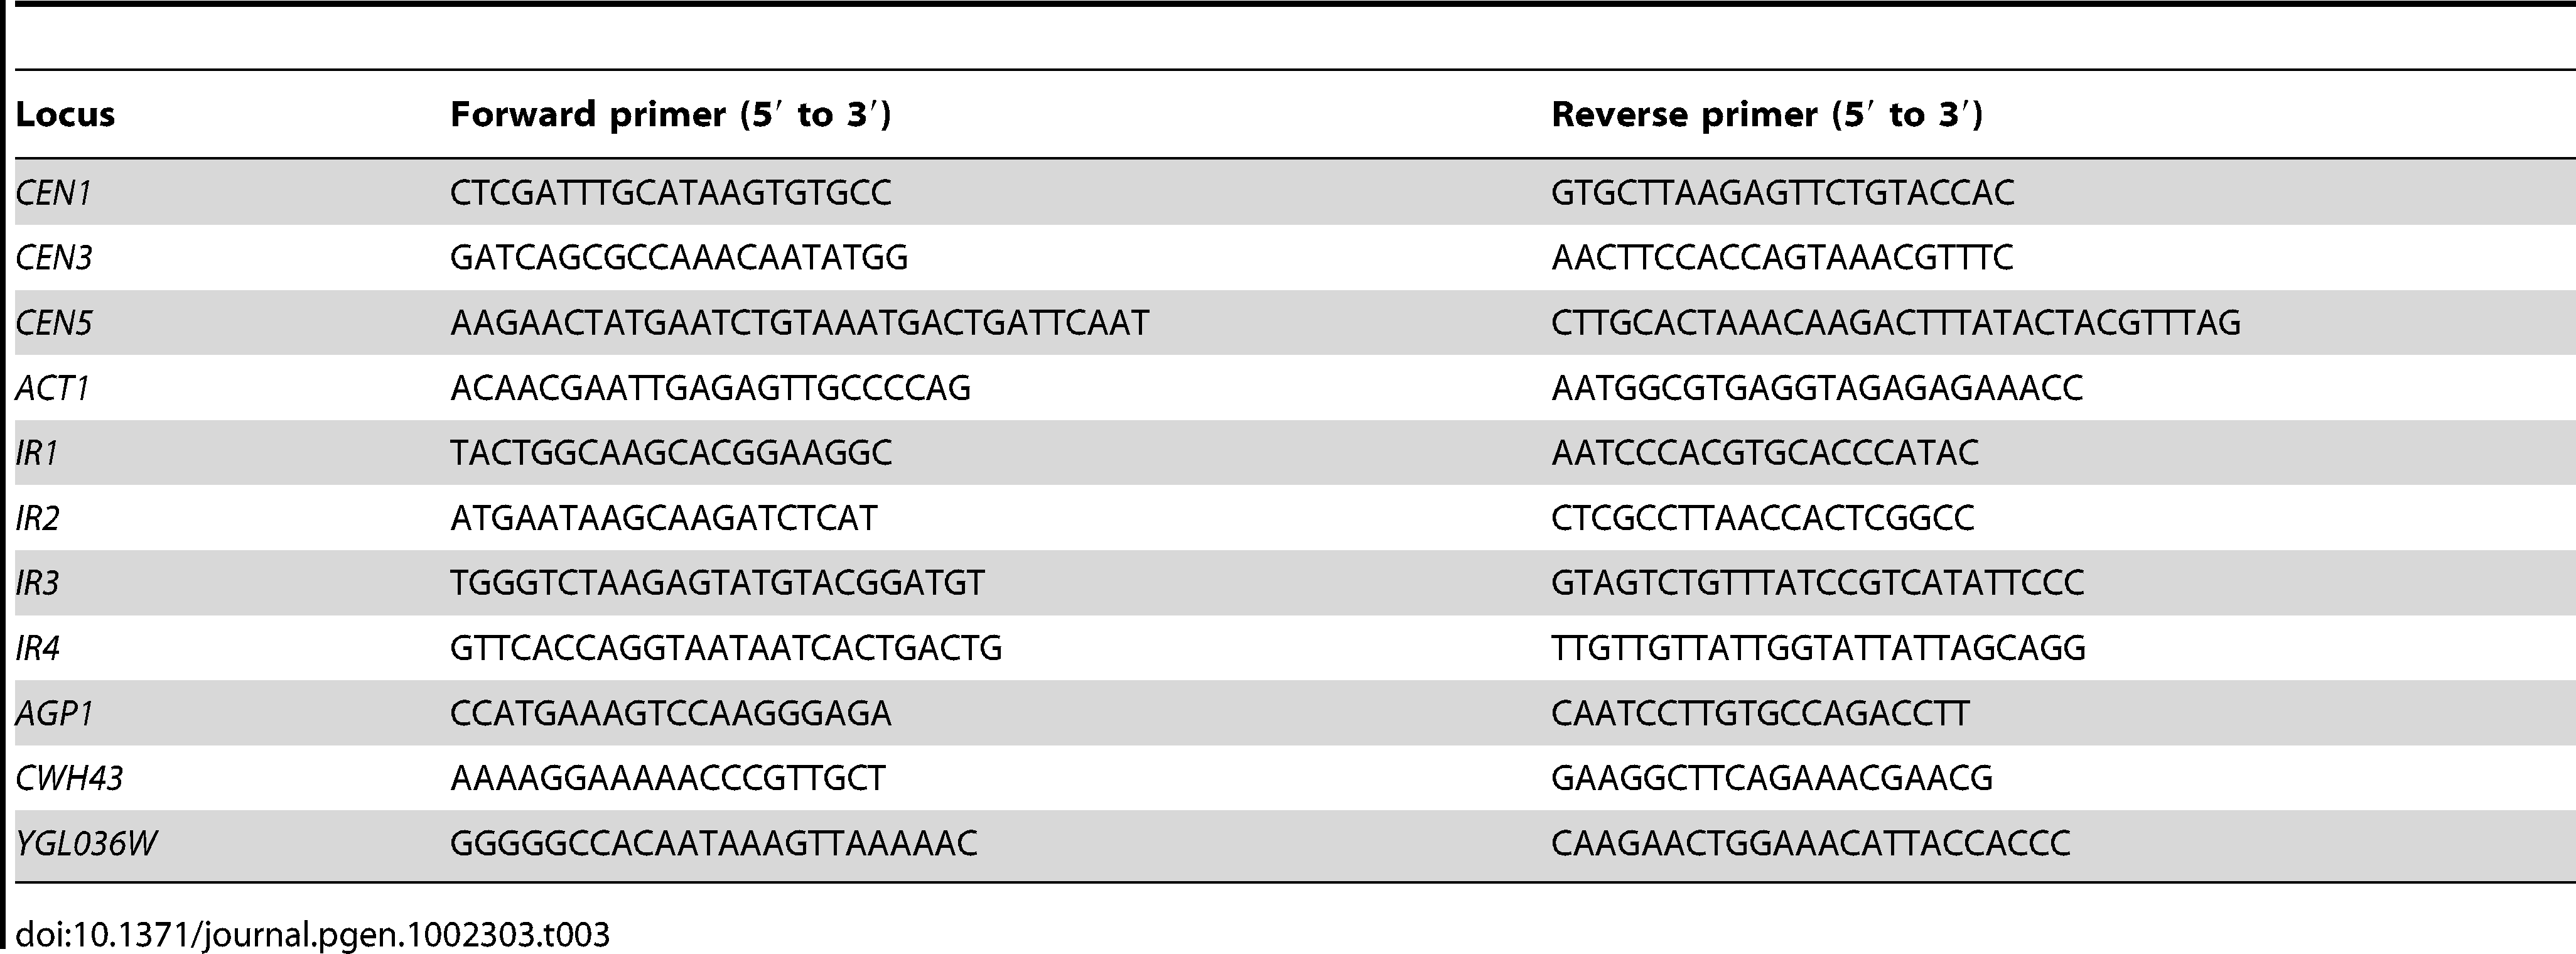 List of primers used in this study.